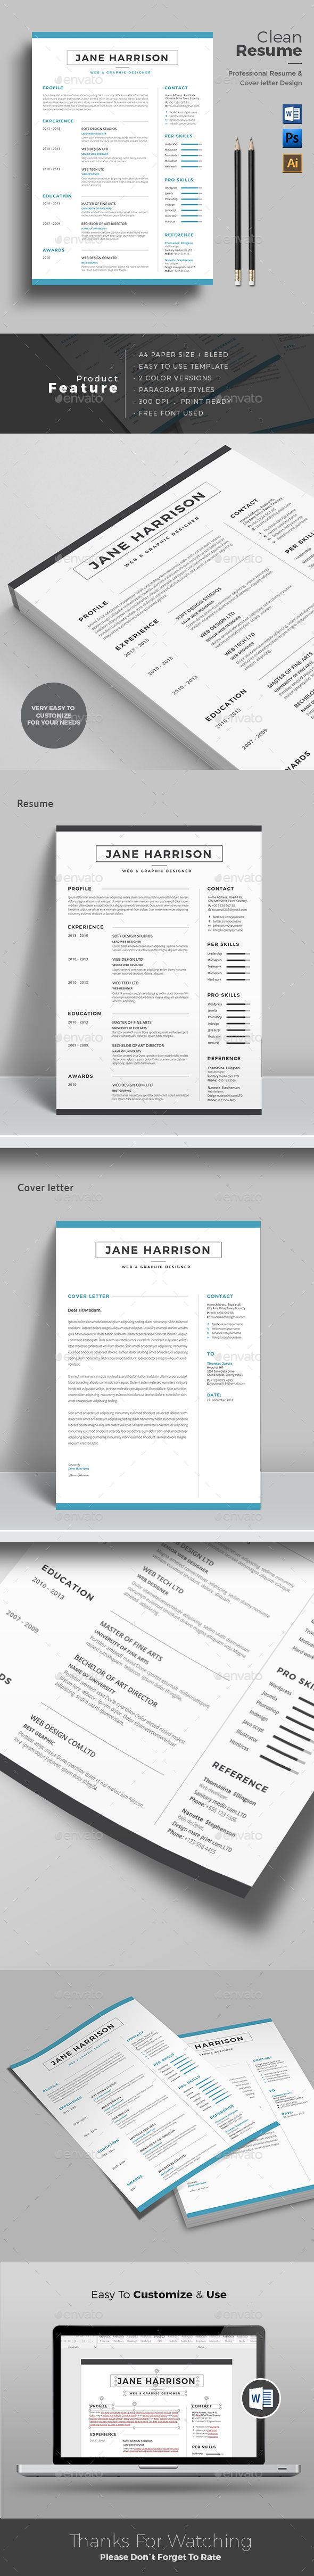 How To Send Resume Pdf Best  Resume Words Ideas On Pinterest  Resume Ideas Resume  References On Resume Format Pdf with Create A Job Resume Excel Resume Word Template For Quick And Easy Editing No Need To Any Image  Editing Software Make Your Resume In A Couple Of Minutes Free Chronological Resume Template Word